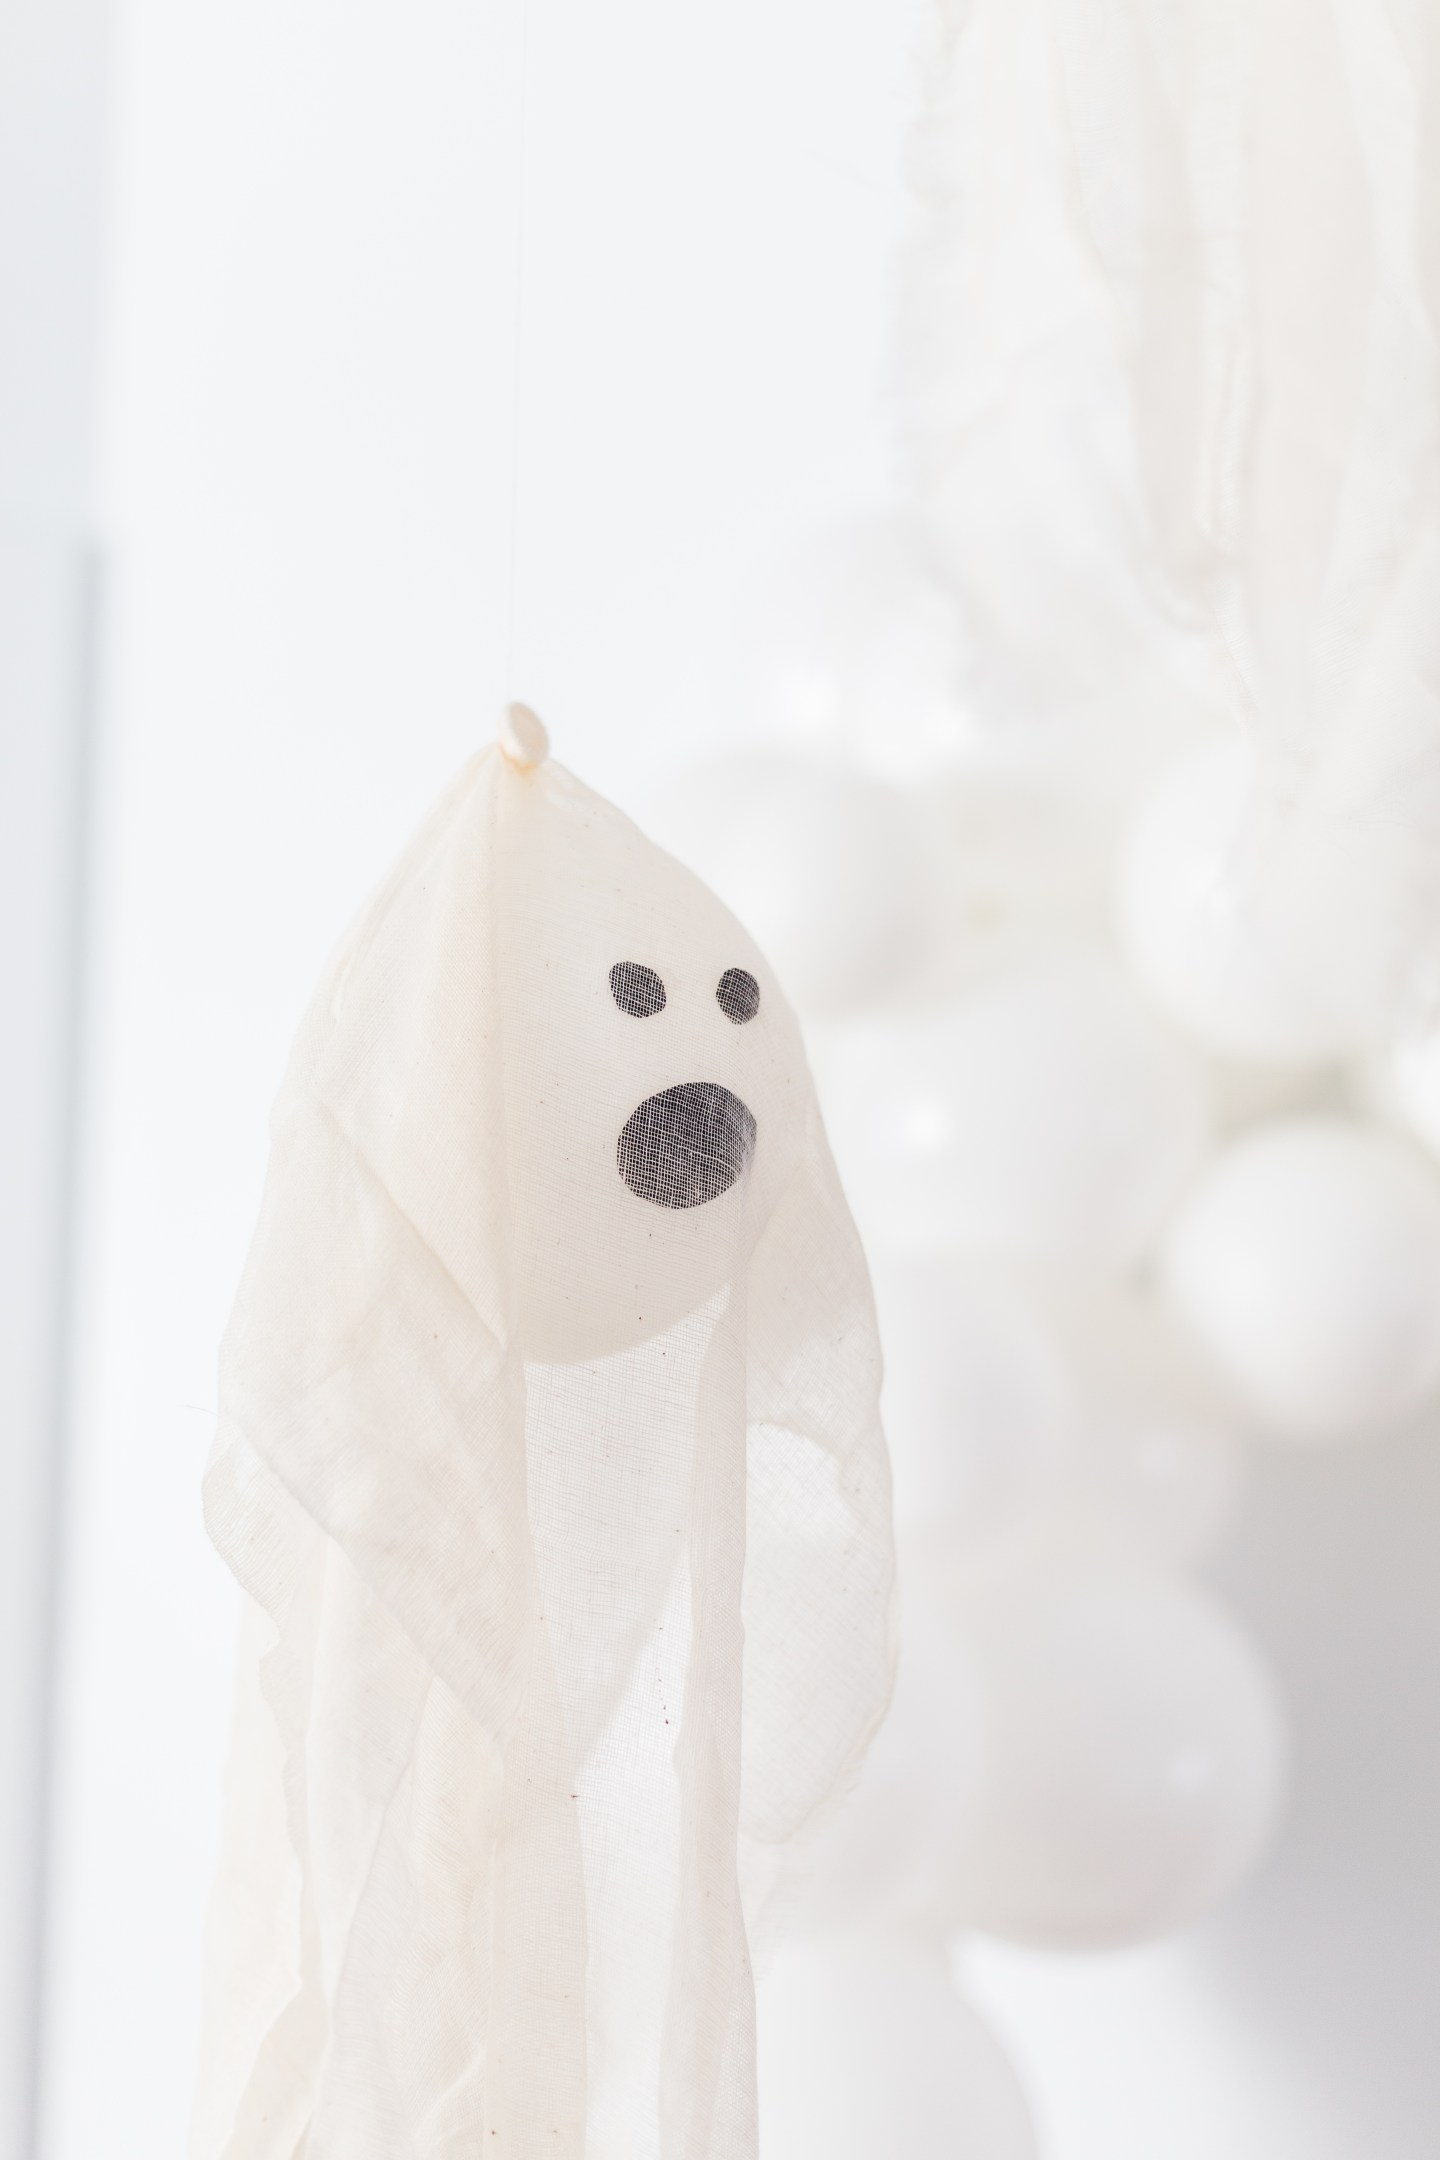 Life lately: Jude is 8 years old | Ghost kids party | #kidshalloweenparty #ghostparty #halloweendecor #ghostdecorations #modernhalloween